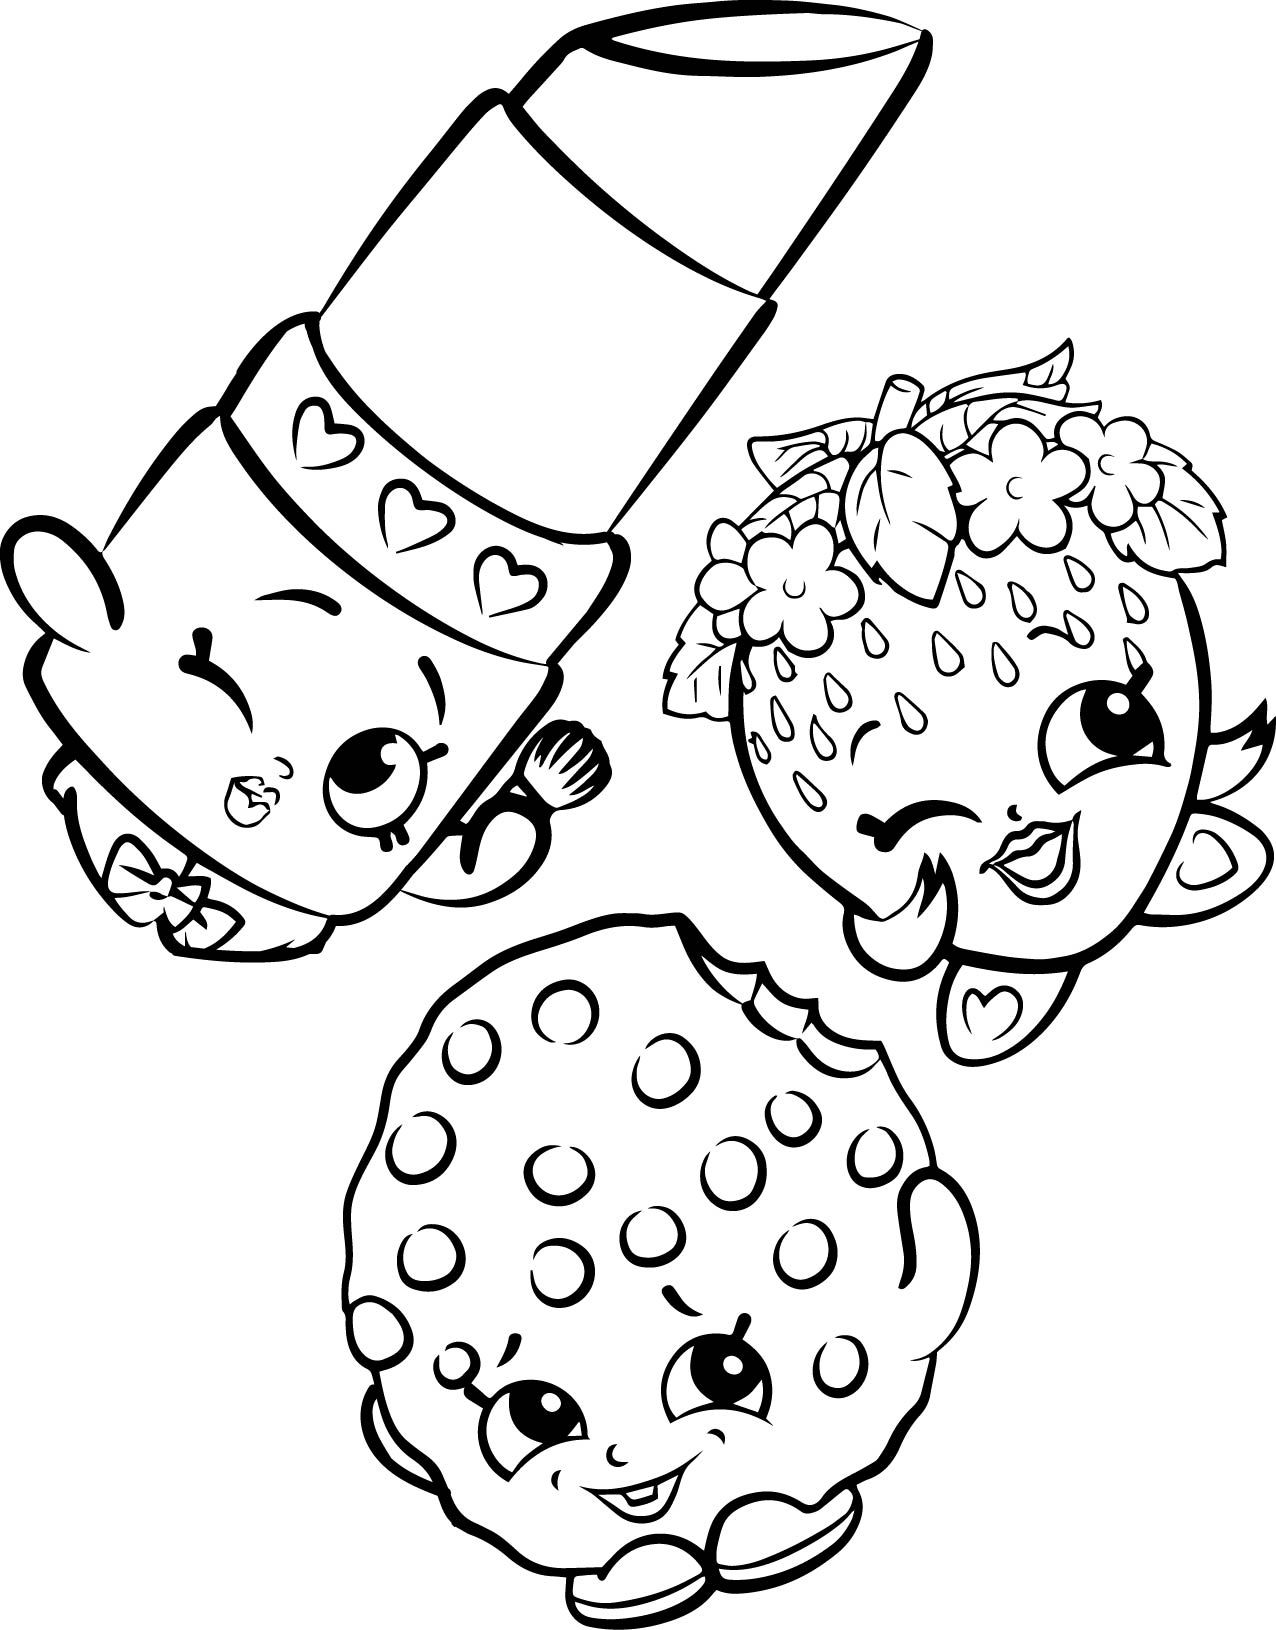 Shopkins Coloring Pages Shopkins Shopkins Colouring Pages